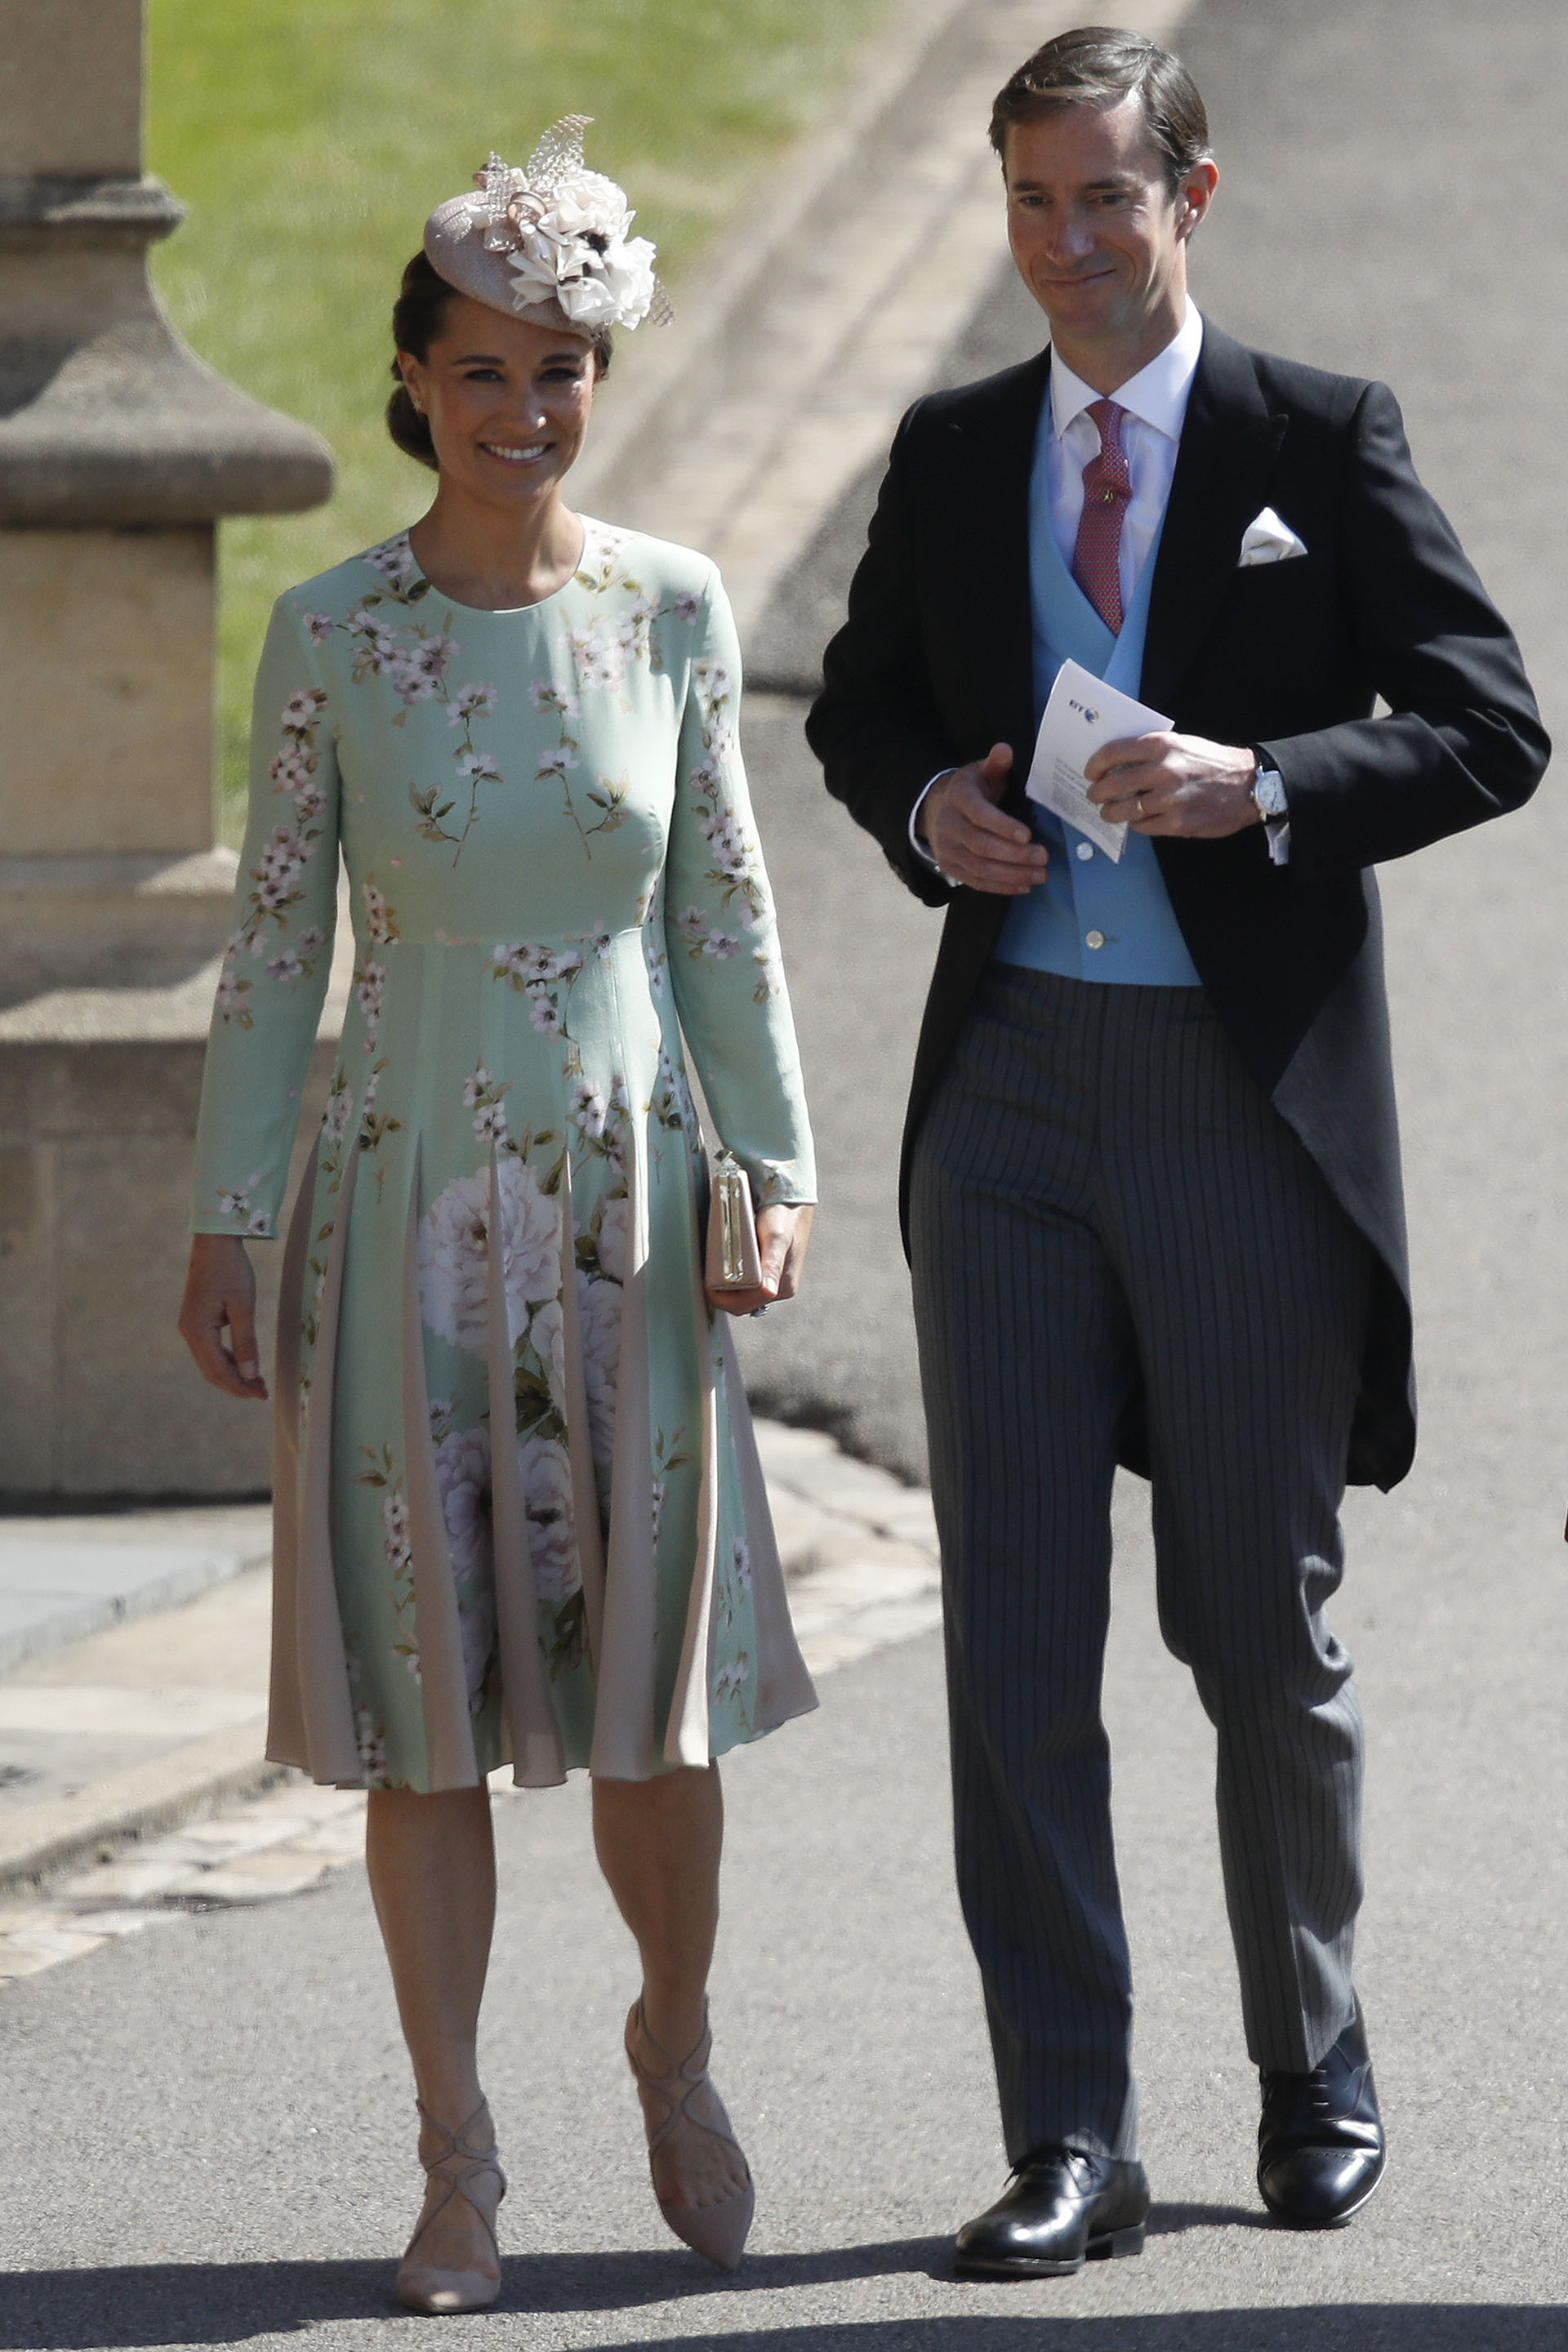 Pippa Middleton, embarazada, y su esposo James